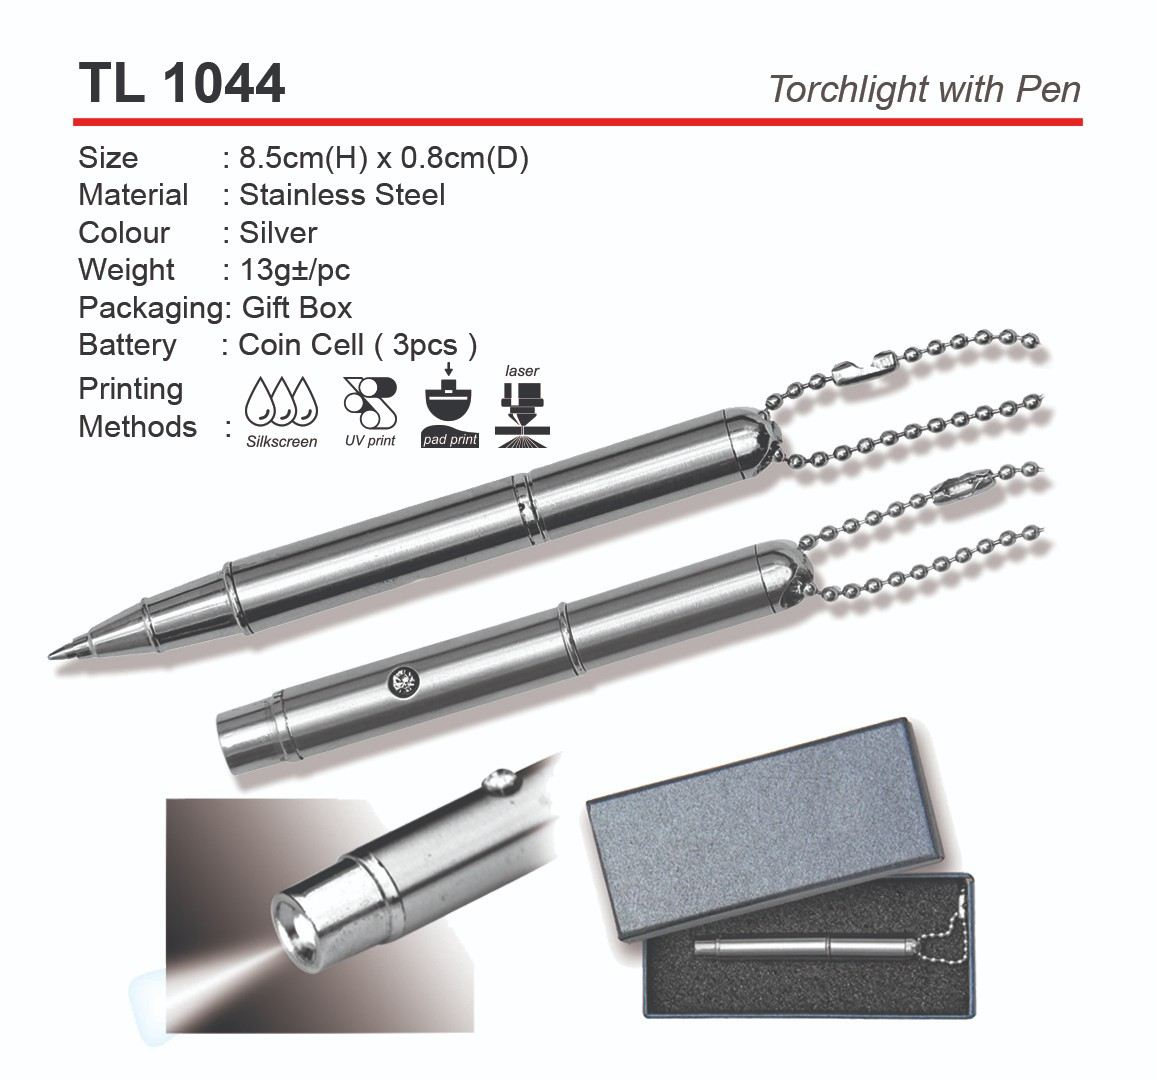 TL1044 Torchlight with Pen